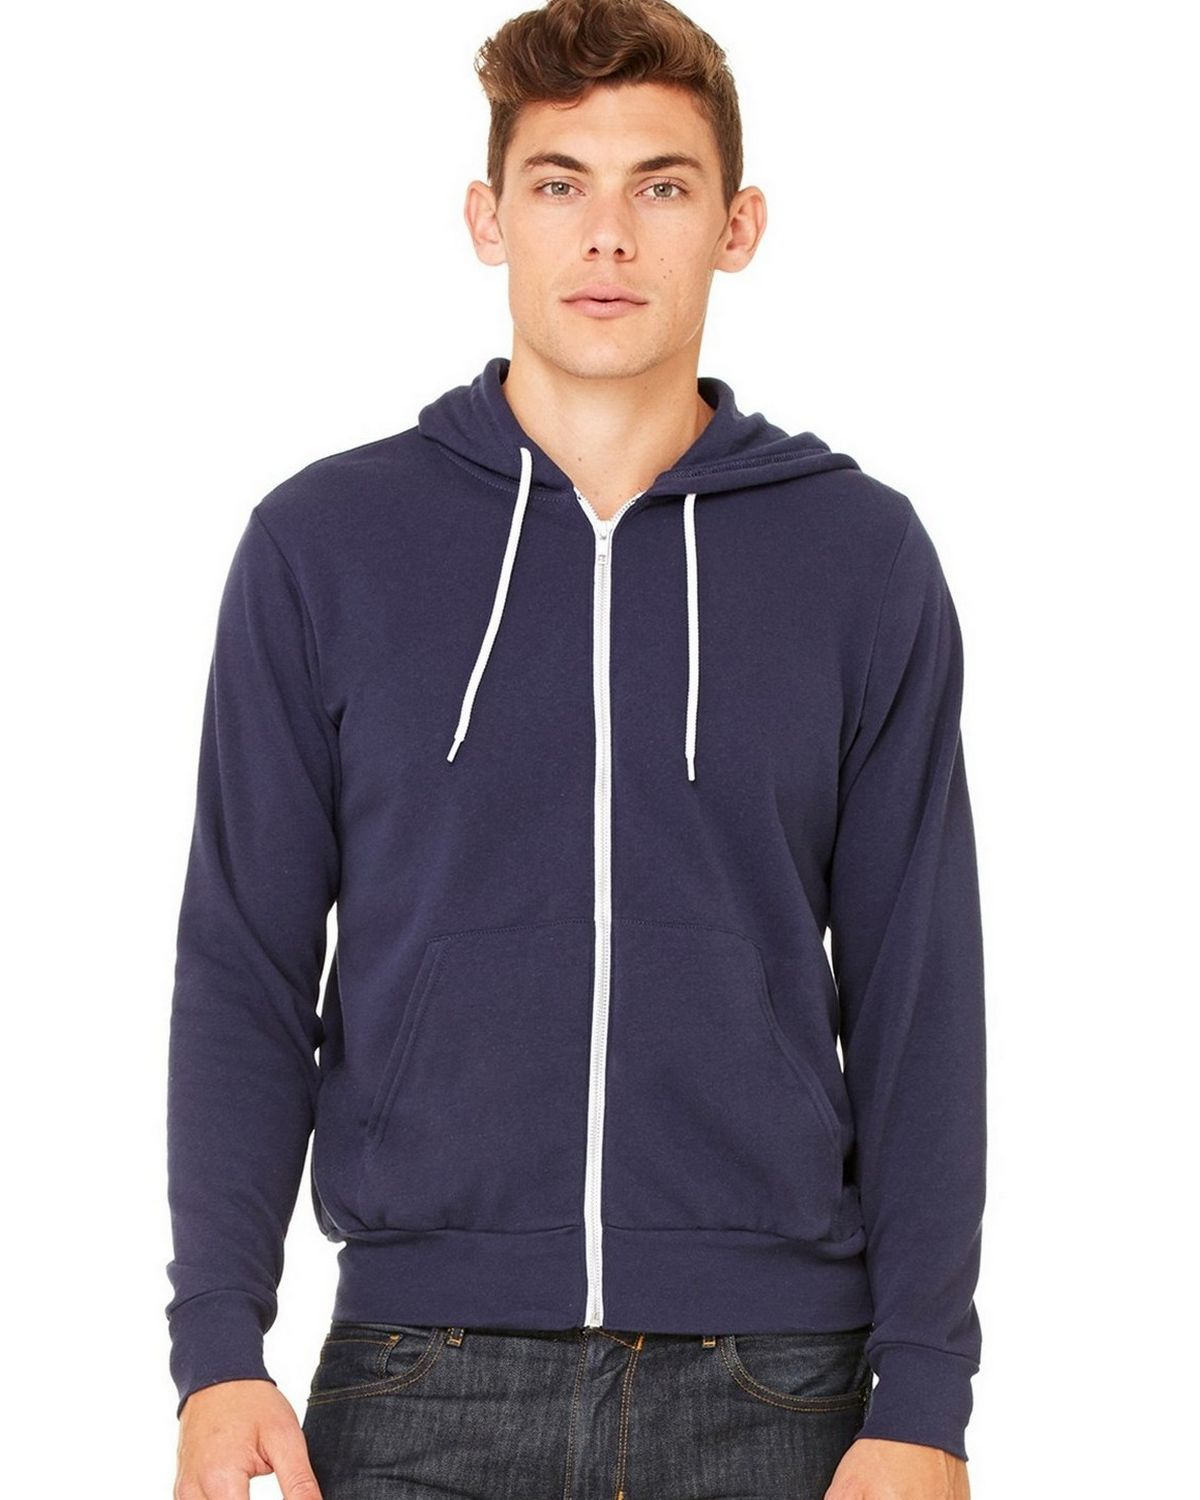 Bella + Canvas C3739 Unisex Full-Zip Hoodie - Heather Navy - 2X C3739